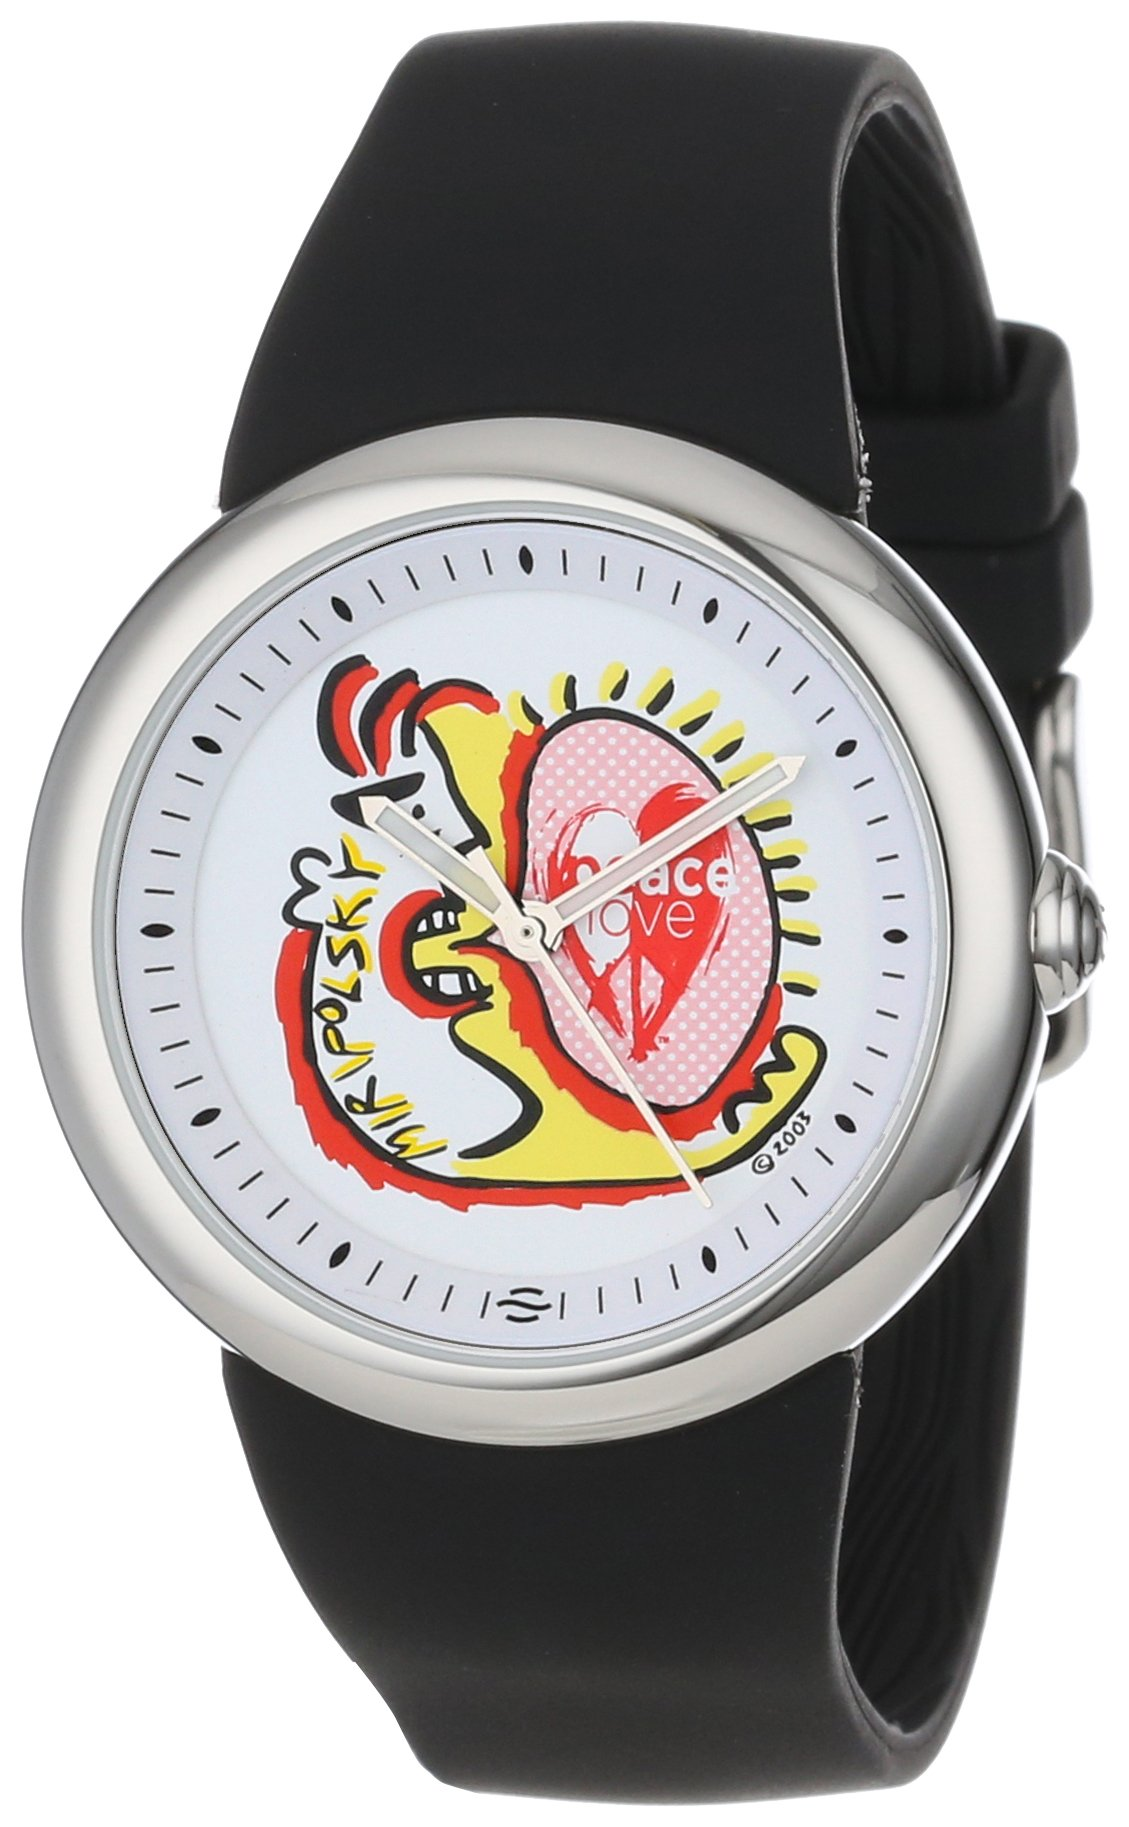 PeaceLove Unisex F36S-PL-B  Round Stainless Steel Black Silicone Strap and ''Miripolsky'' Art Dial Watch by Love & Peace (Image #1)